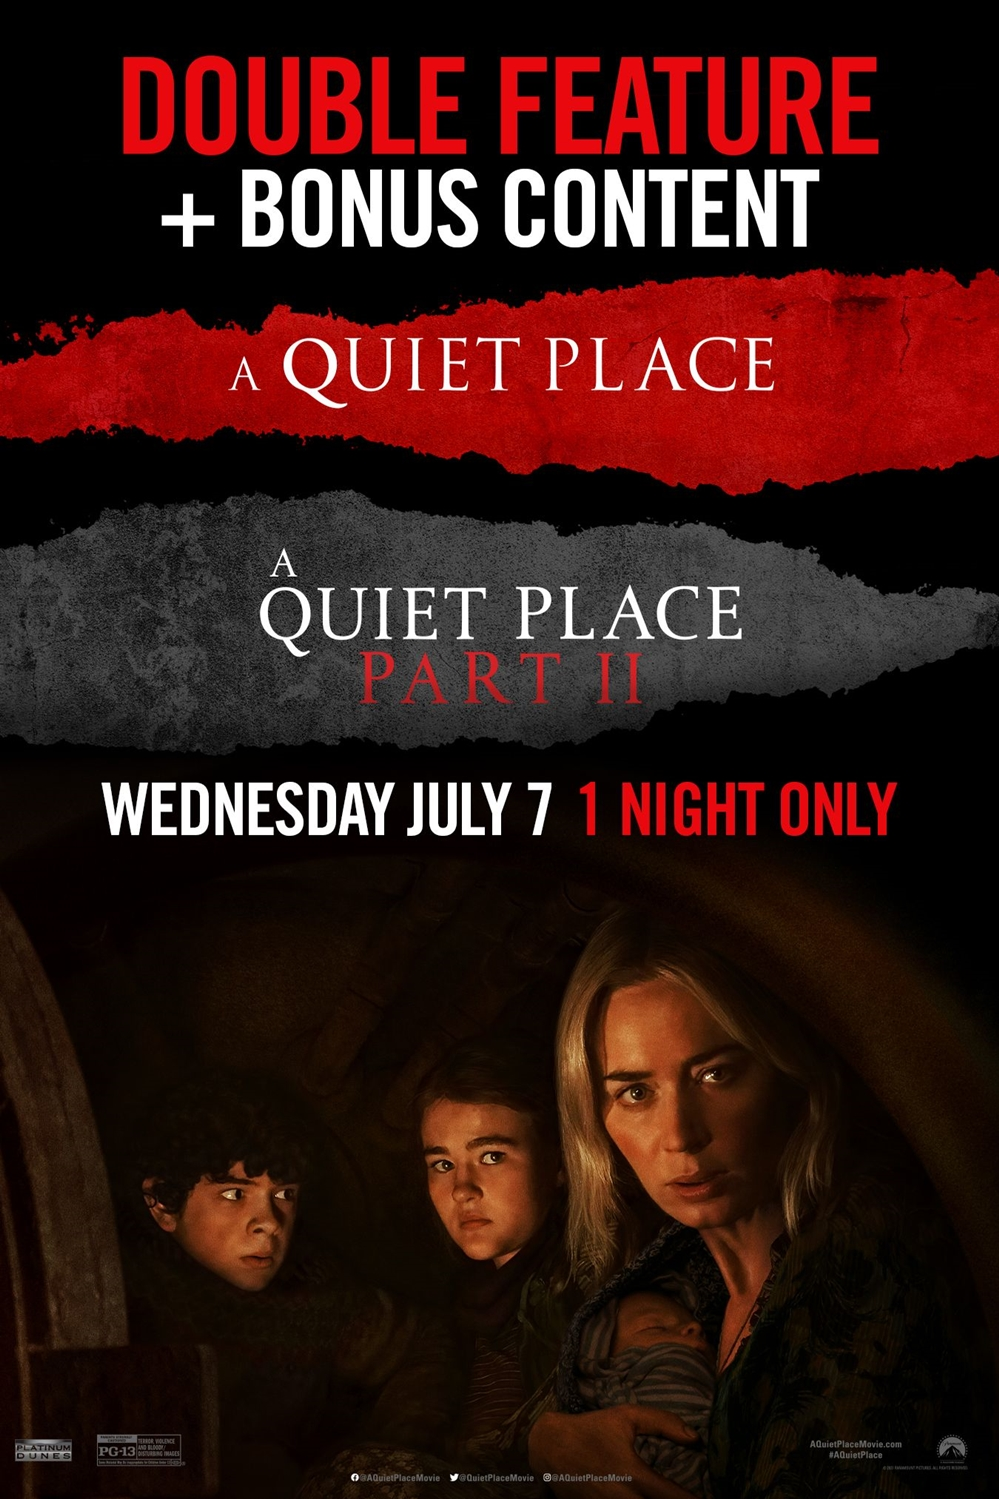 A Quiet Place Double Feature Poster